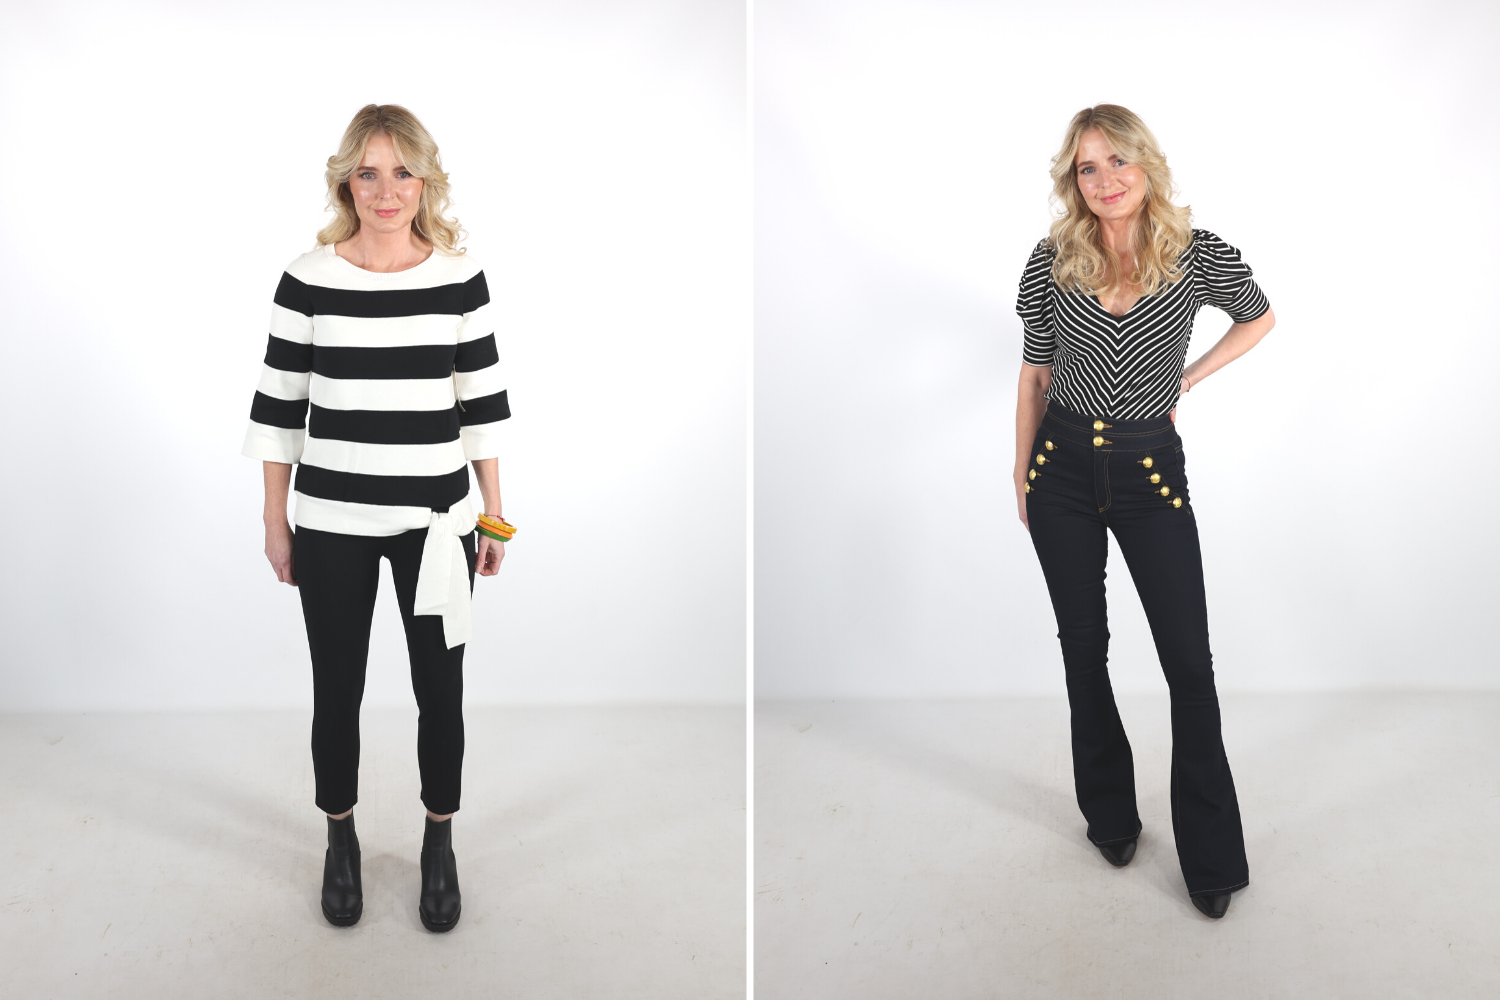 How To Look Younger & Slimmer - 5 Key Style Tips for Women Over 40